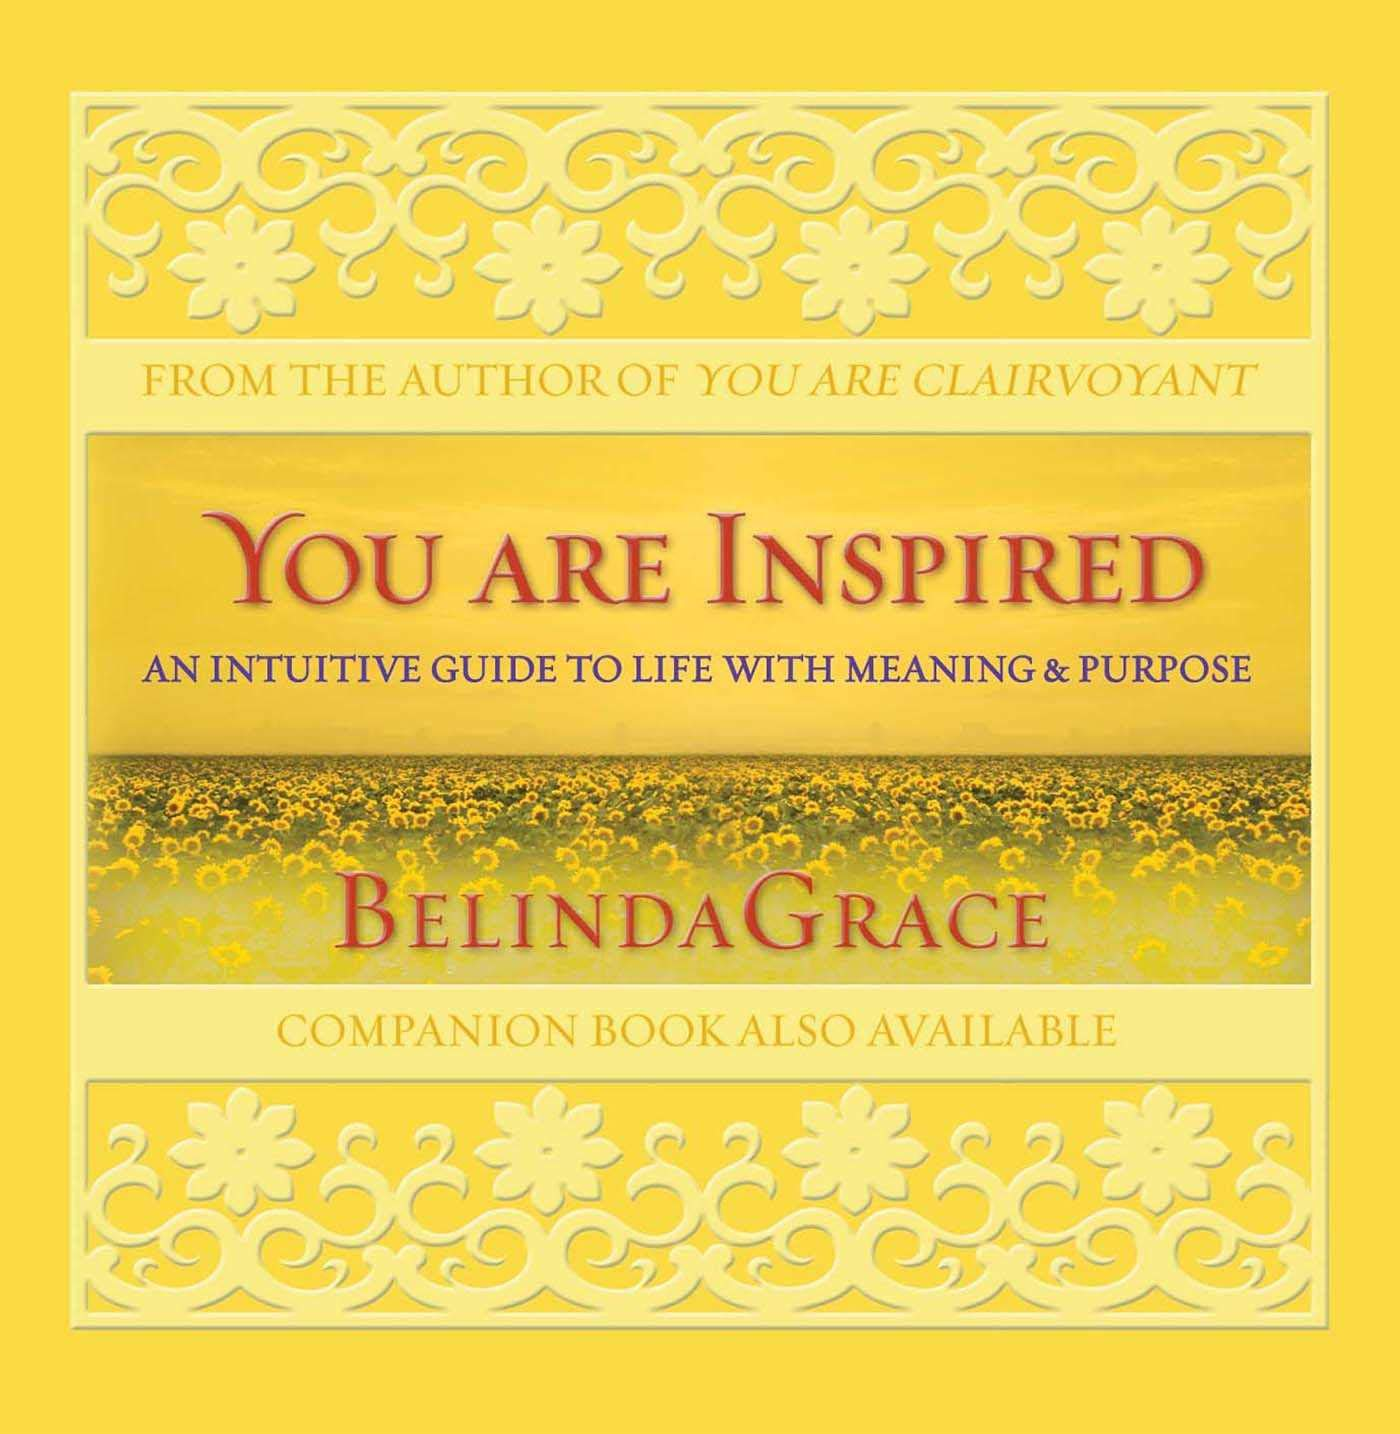 You Are Inspired: An Intuitive Guide to Life with Meaning & Purpose